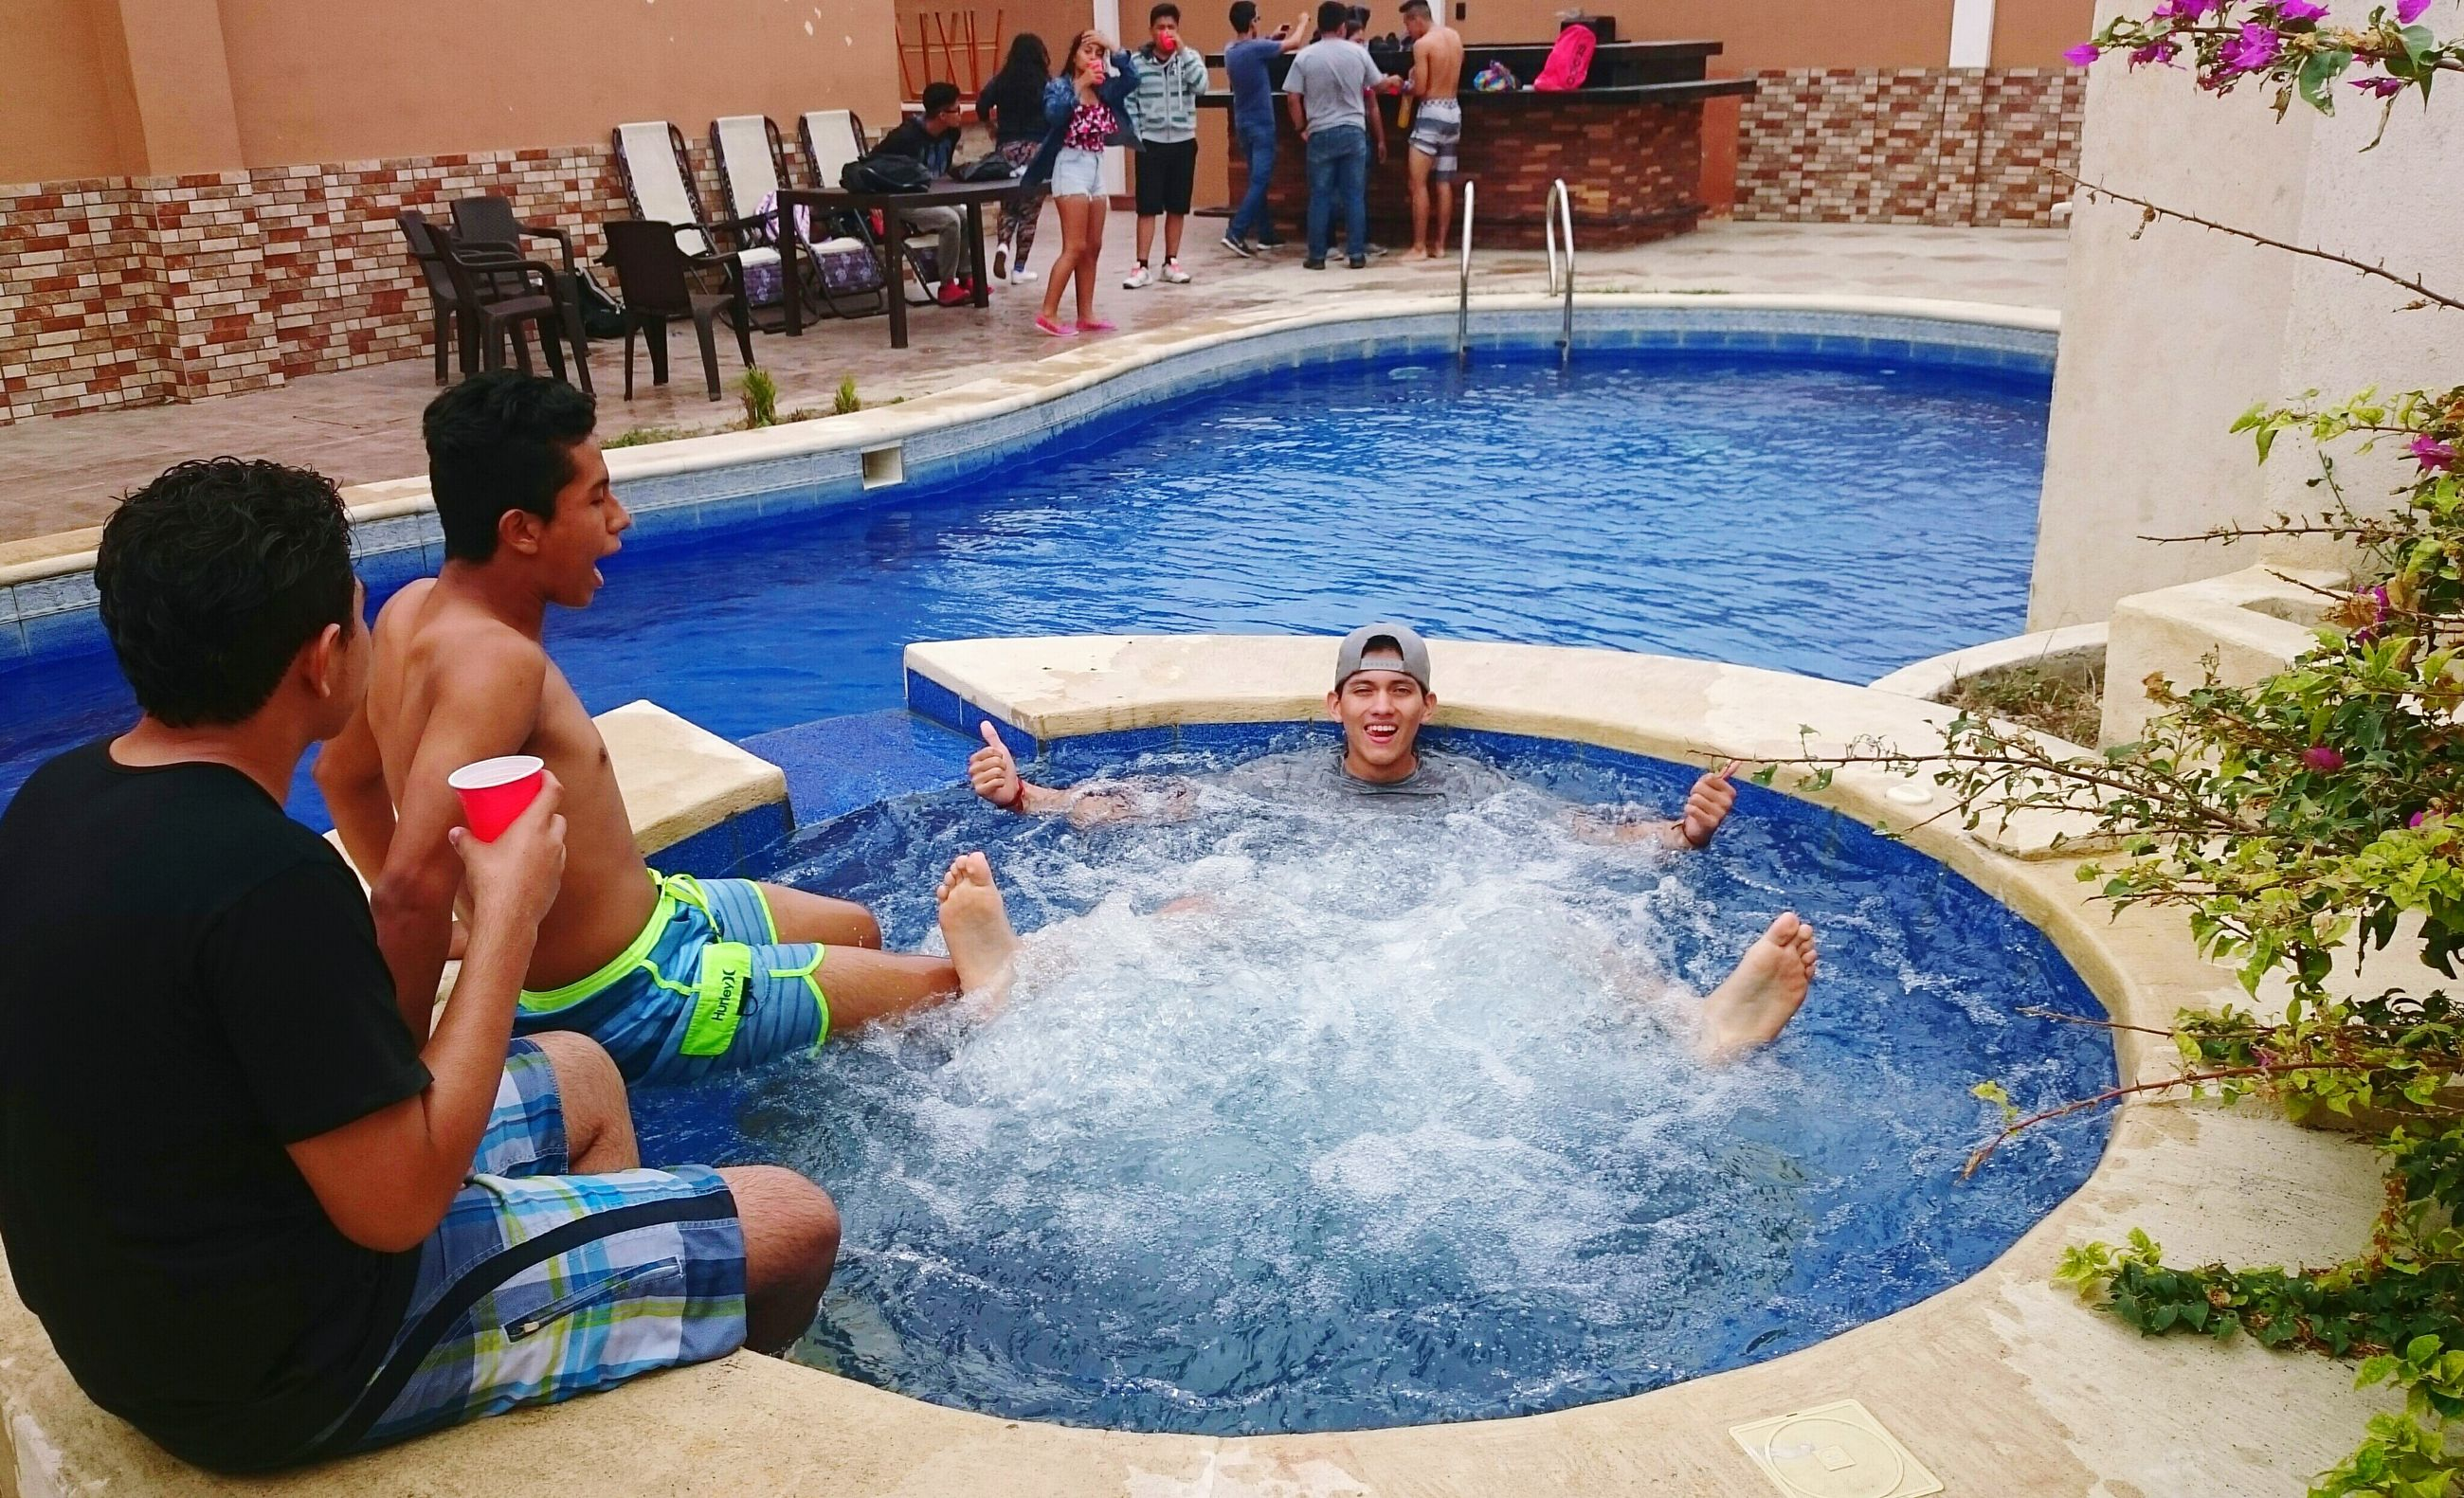 water, swimming pool, real people, leisure activity, lifestyles, enjoyment, men, boys, togetherness, day, outdoors, people, adult